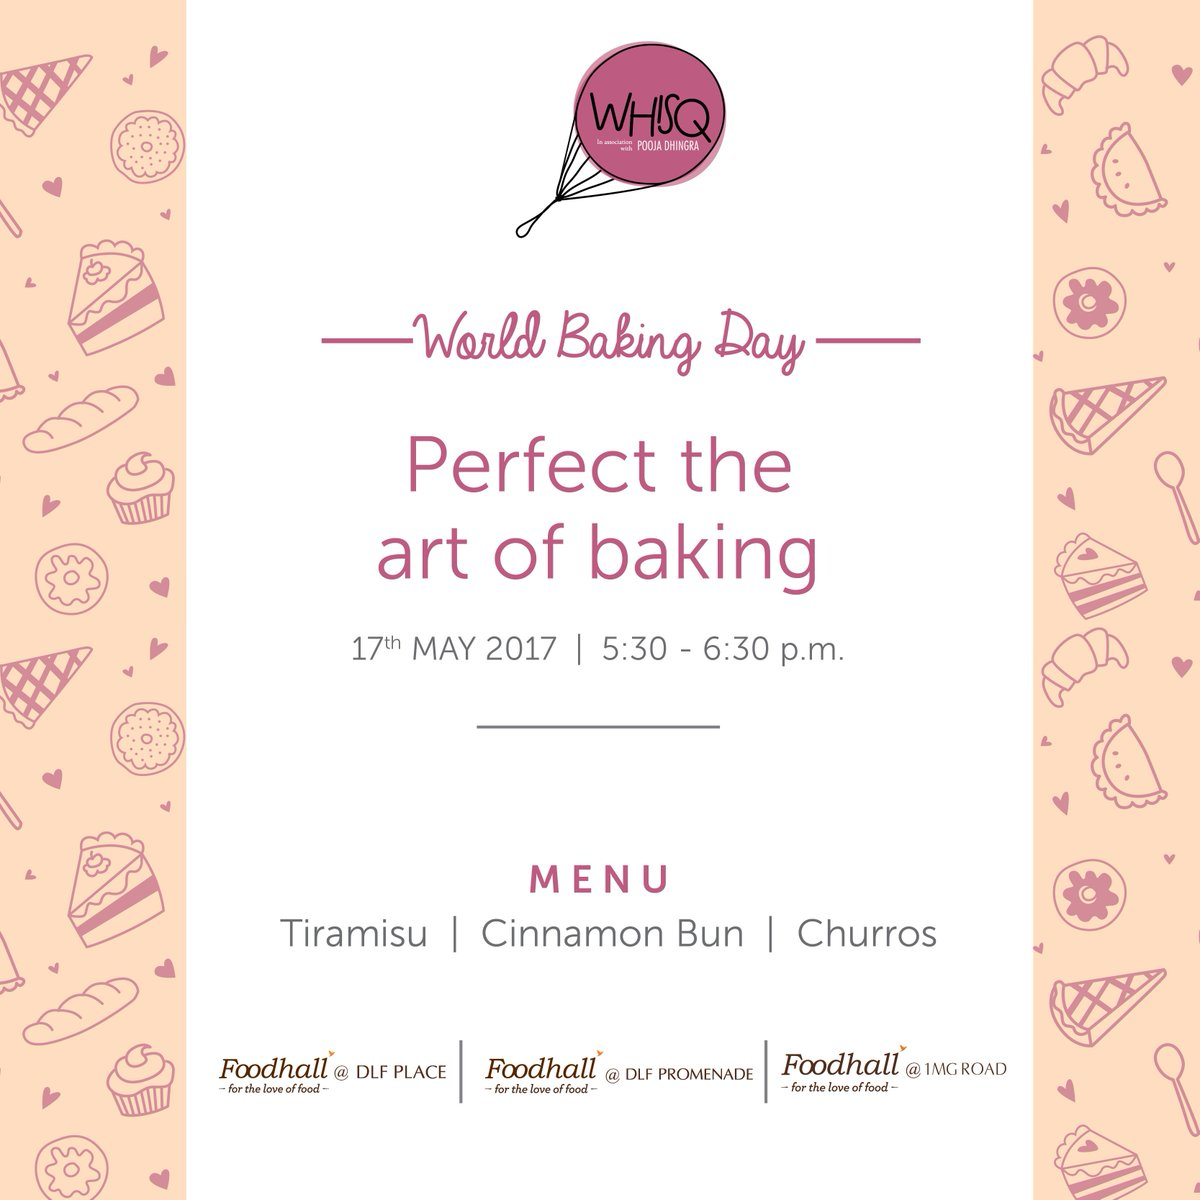 Perfect the art of baking this #WorldBakingDay! Let us help you prepare delectable desserts from around the world!  @WhisQIndia https://t.co/fMu6h0PUsM